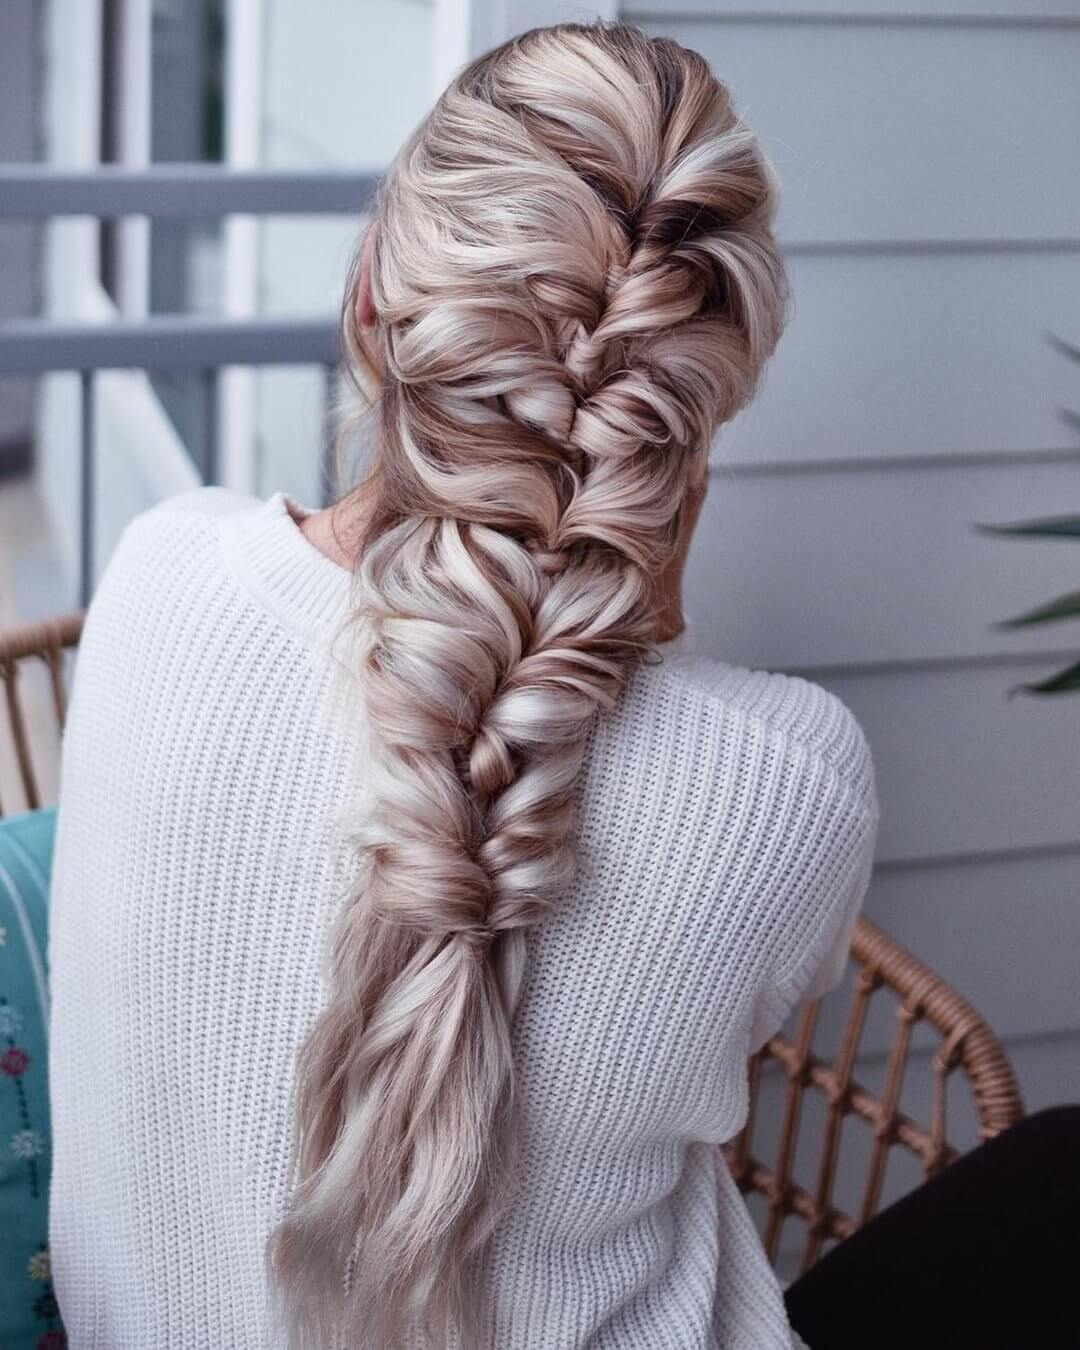 Do You Like To Use Color Hairstyles?